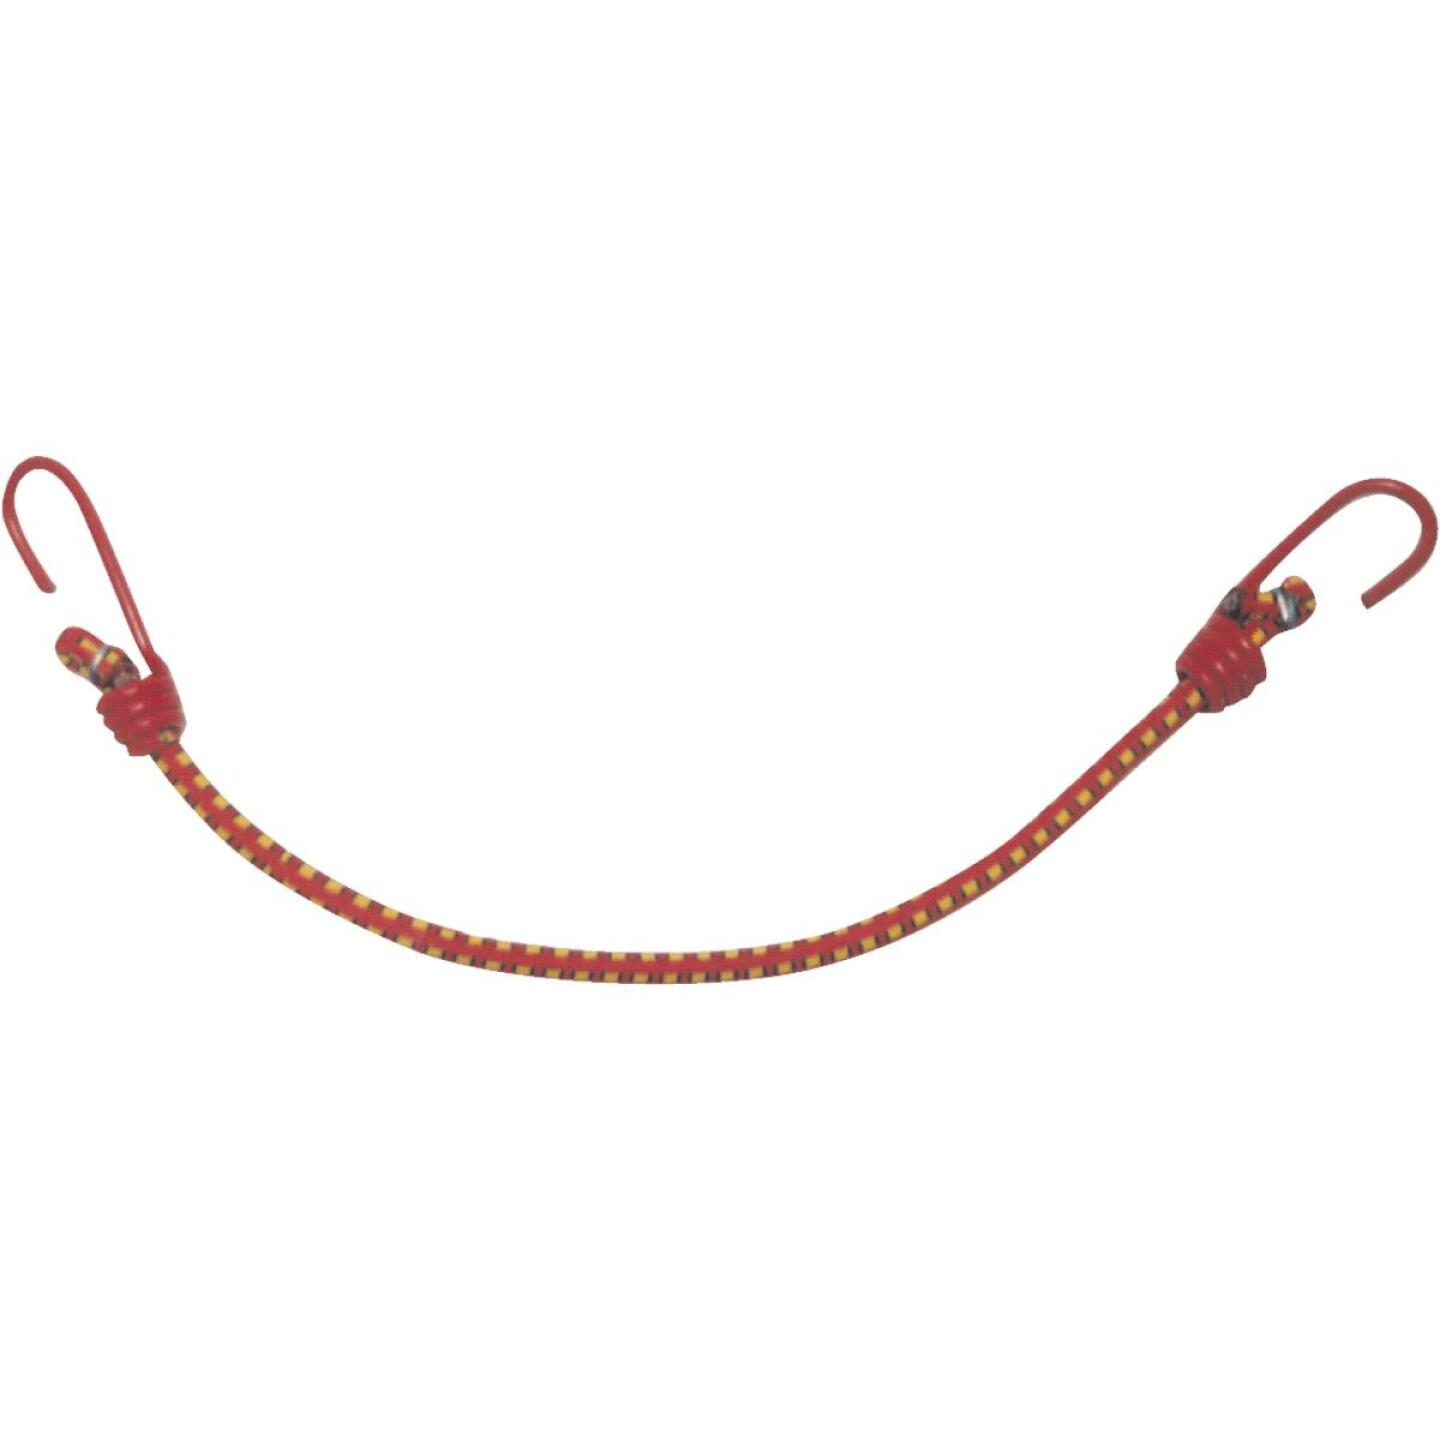 Erickson 1/4 In. x 18 In. Bungee Cord, Assorted Colors Image 1